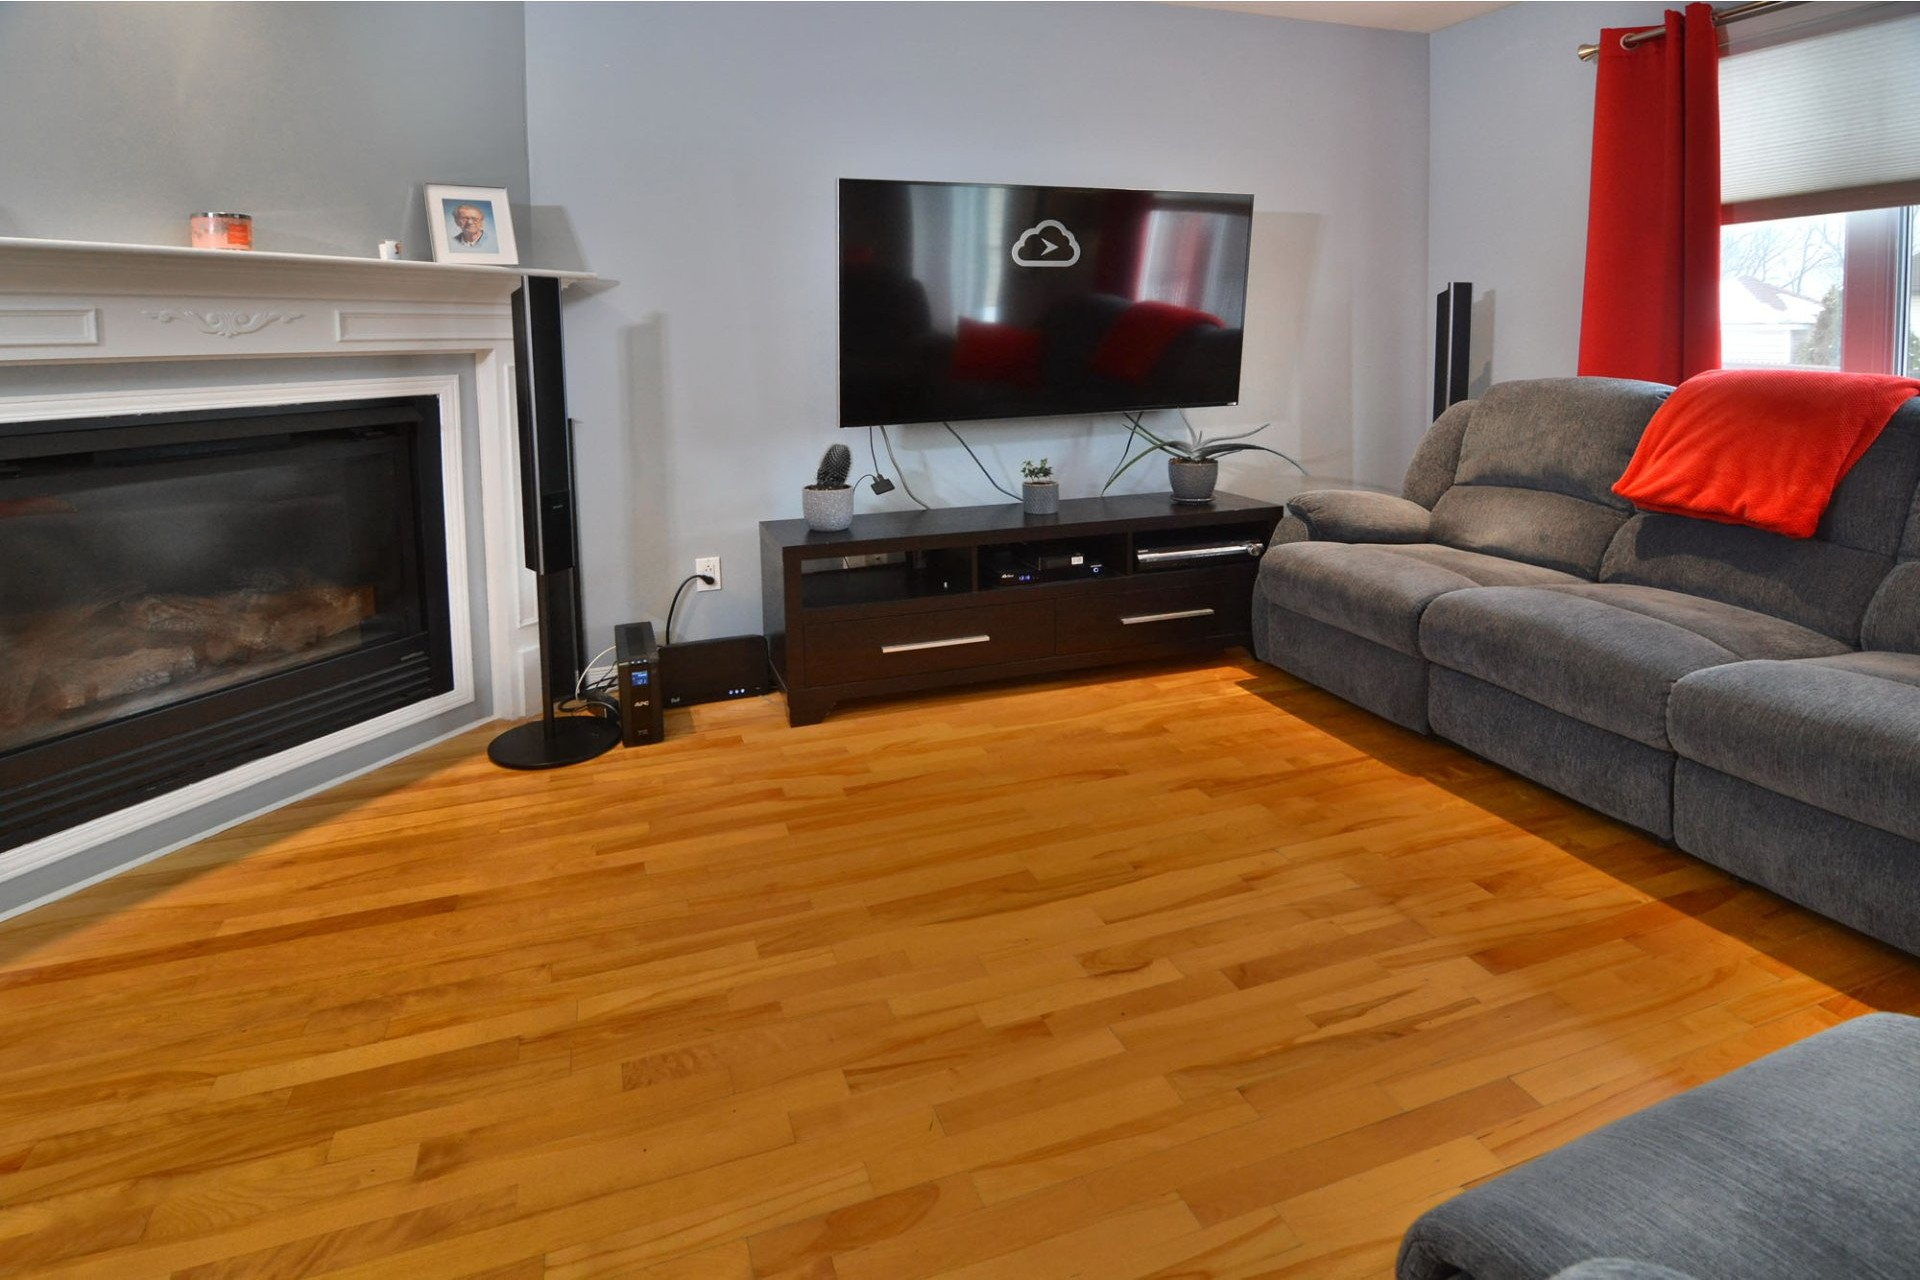 image 5 - House For sale Vaudreuil-Dorion - 13 rooms